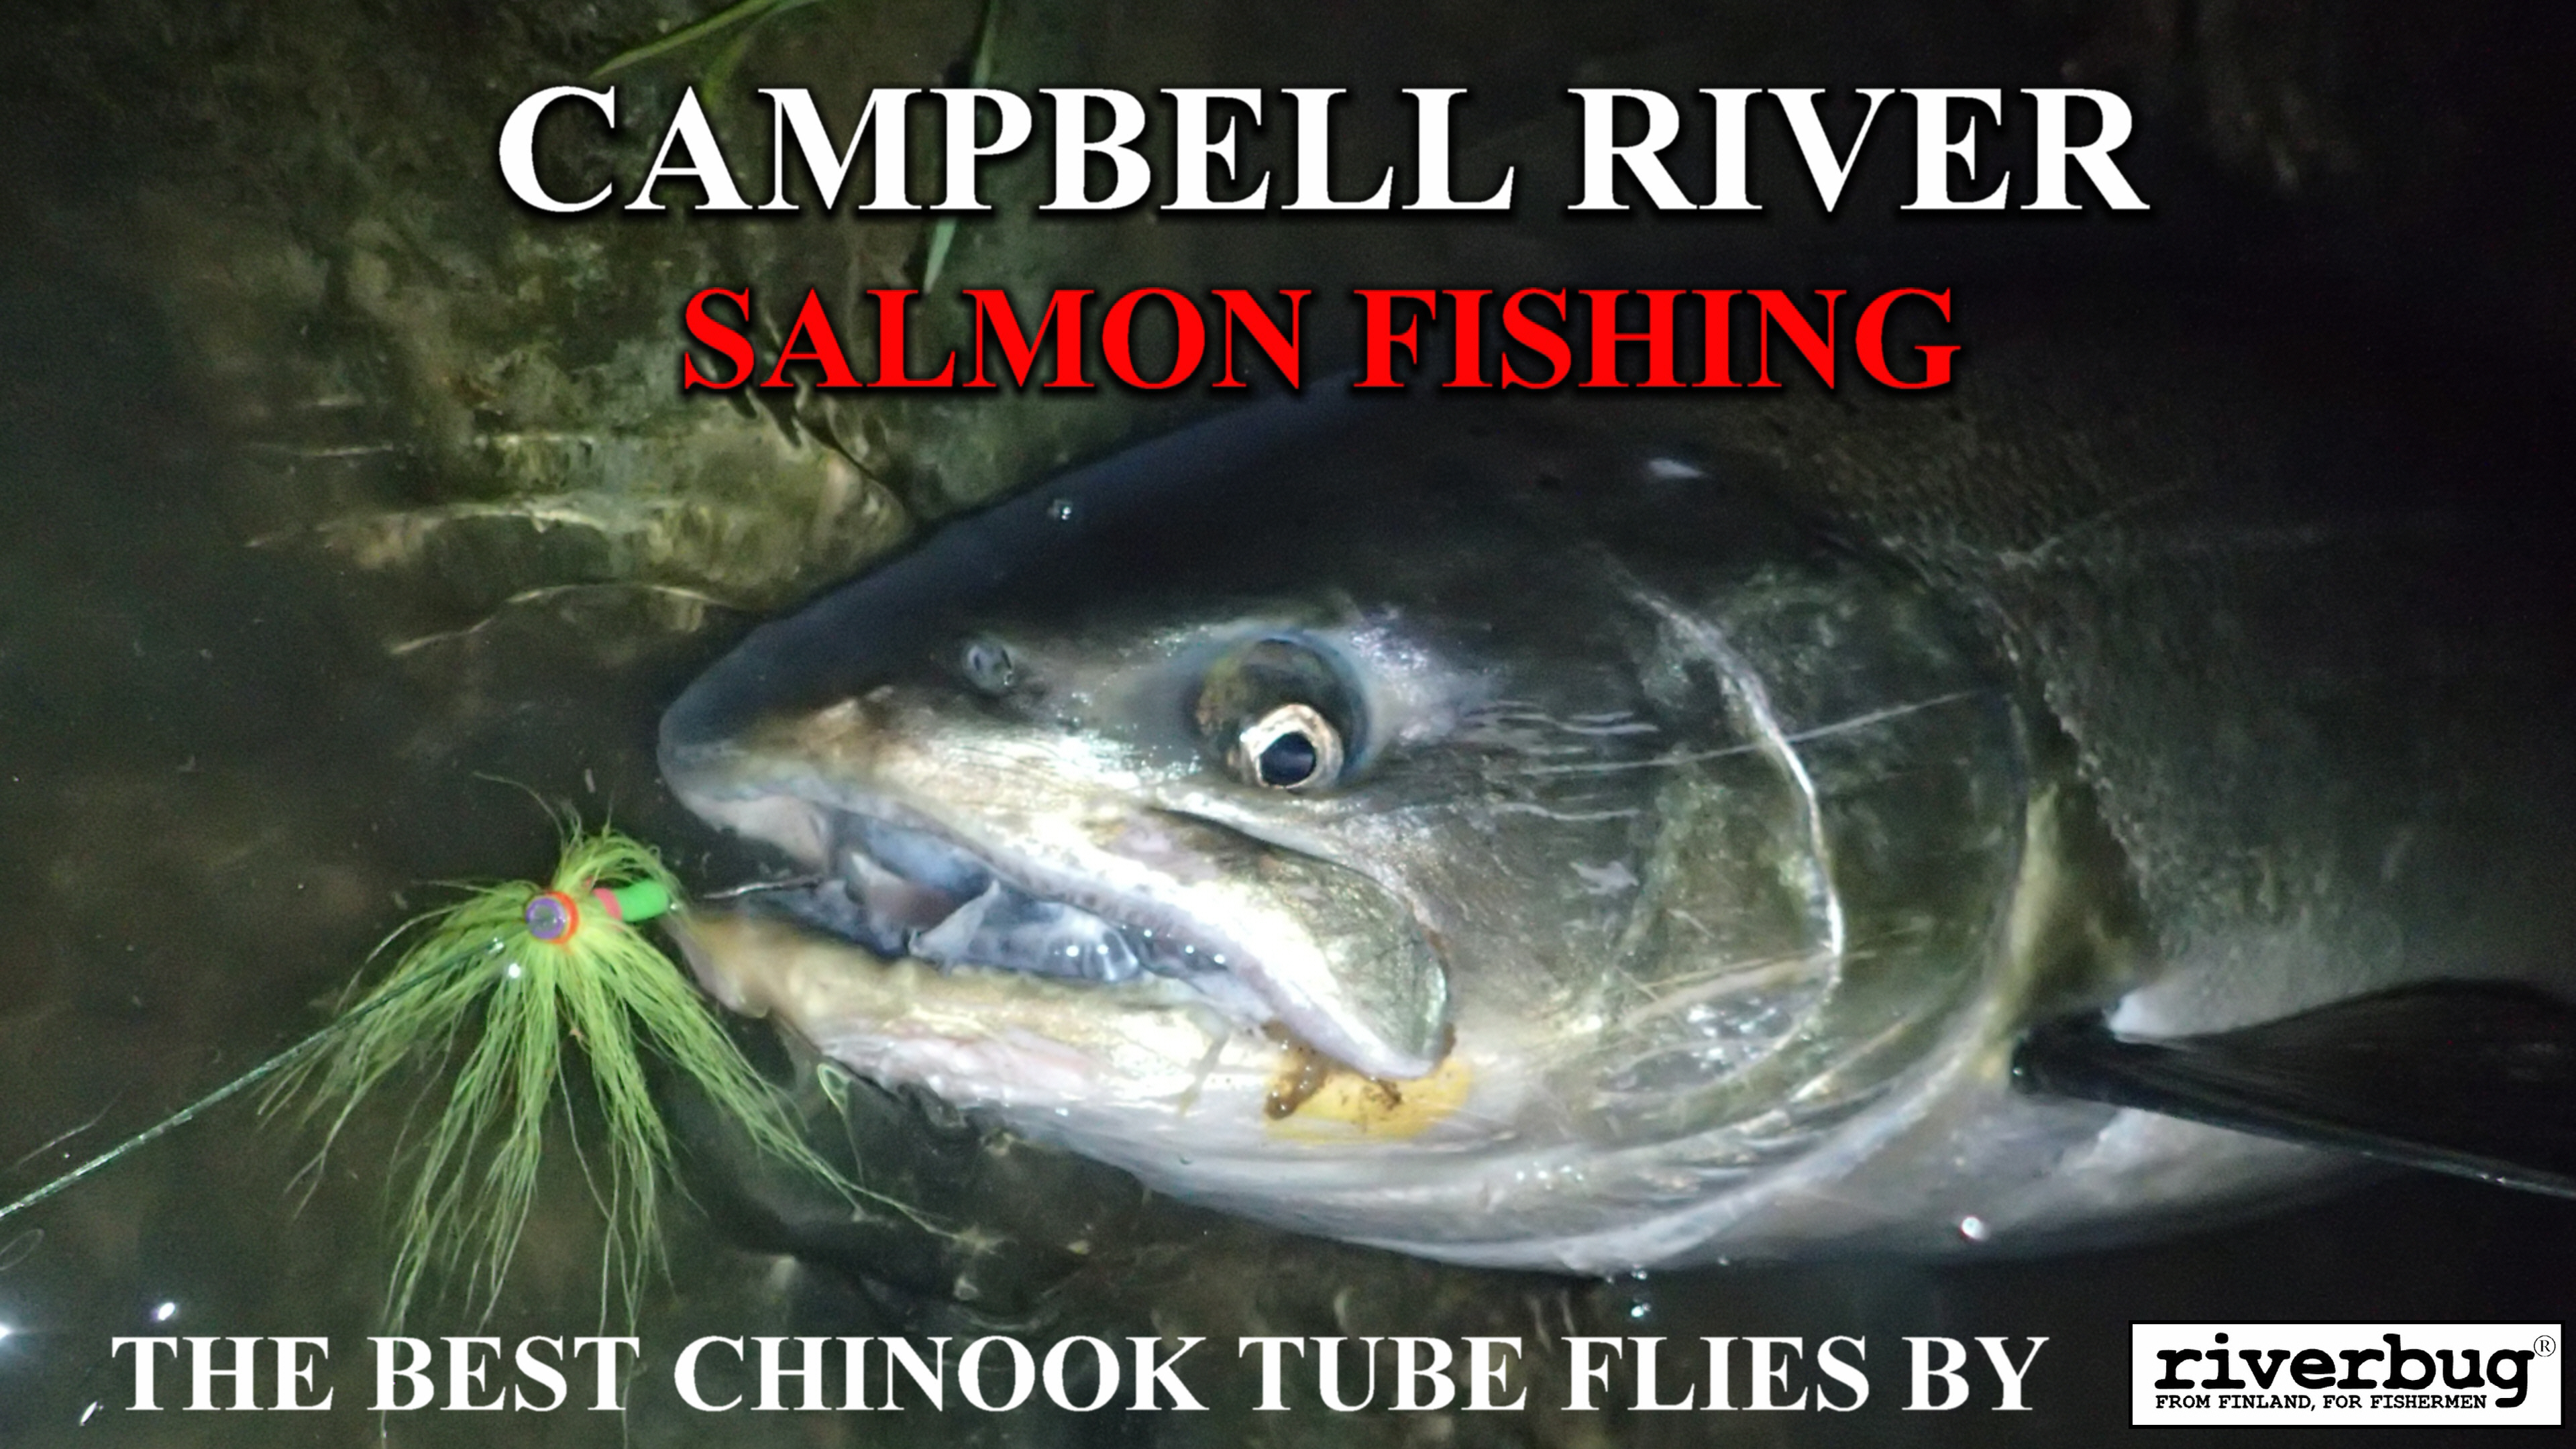 "CAMPBELL RIVER SALMON with RiverBug ""Tennari"" tube fly - Kuningaslohi RiverBugiin sidotulla Tennariperholla. #campbellriver #campbellriversalmon #tornionjoki #putkiperhot #matkakoski #tubfluga #tubeflue #lohiperhot #salmonfly #riverbug #tennari #tubenfliegen #salmon #lax #lohi #kungslax"